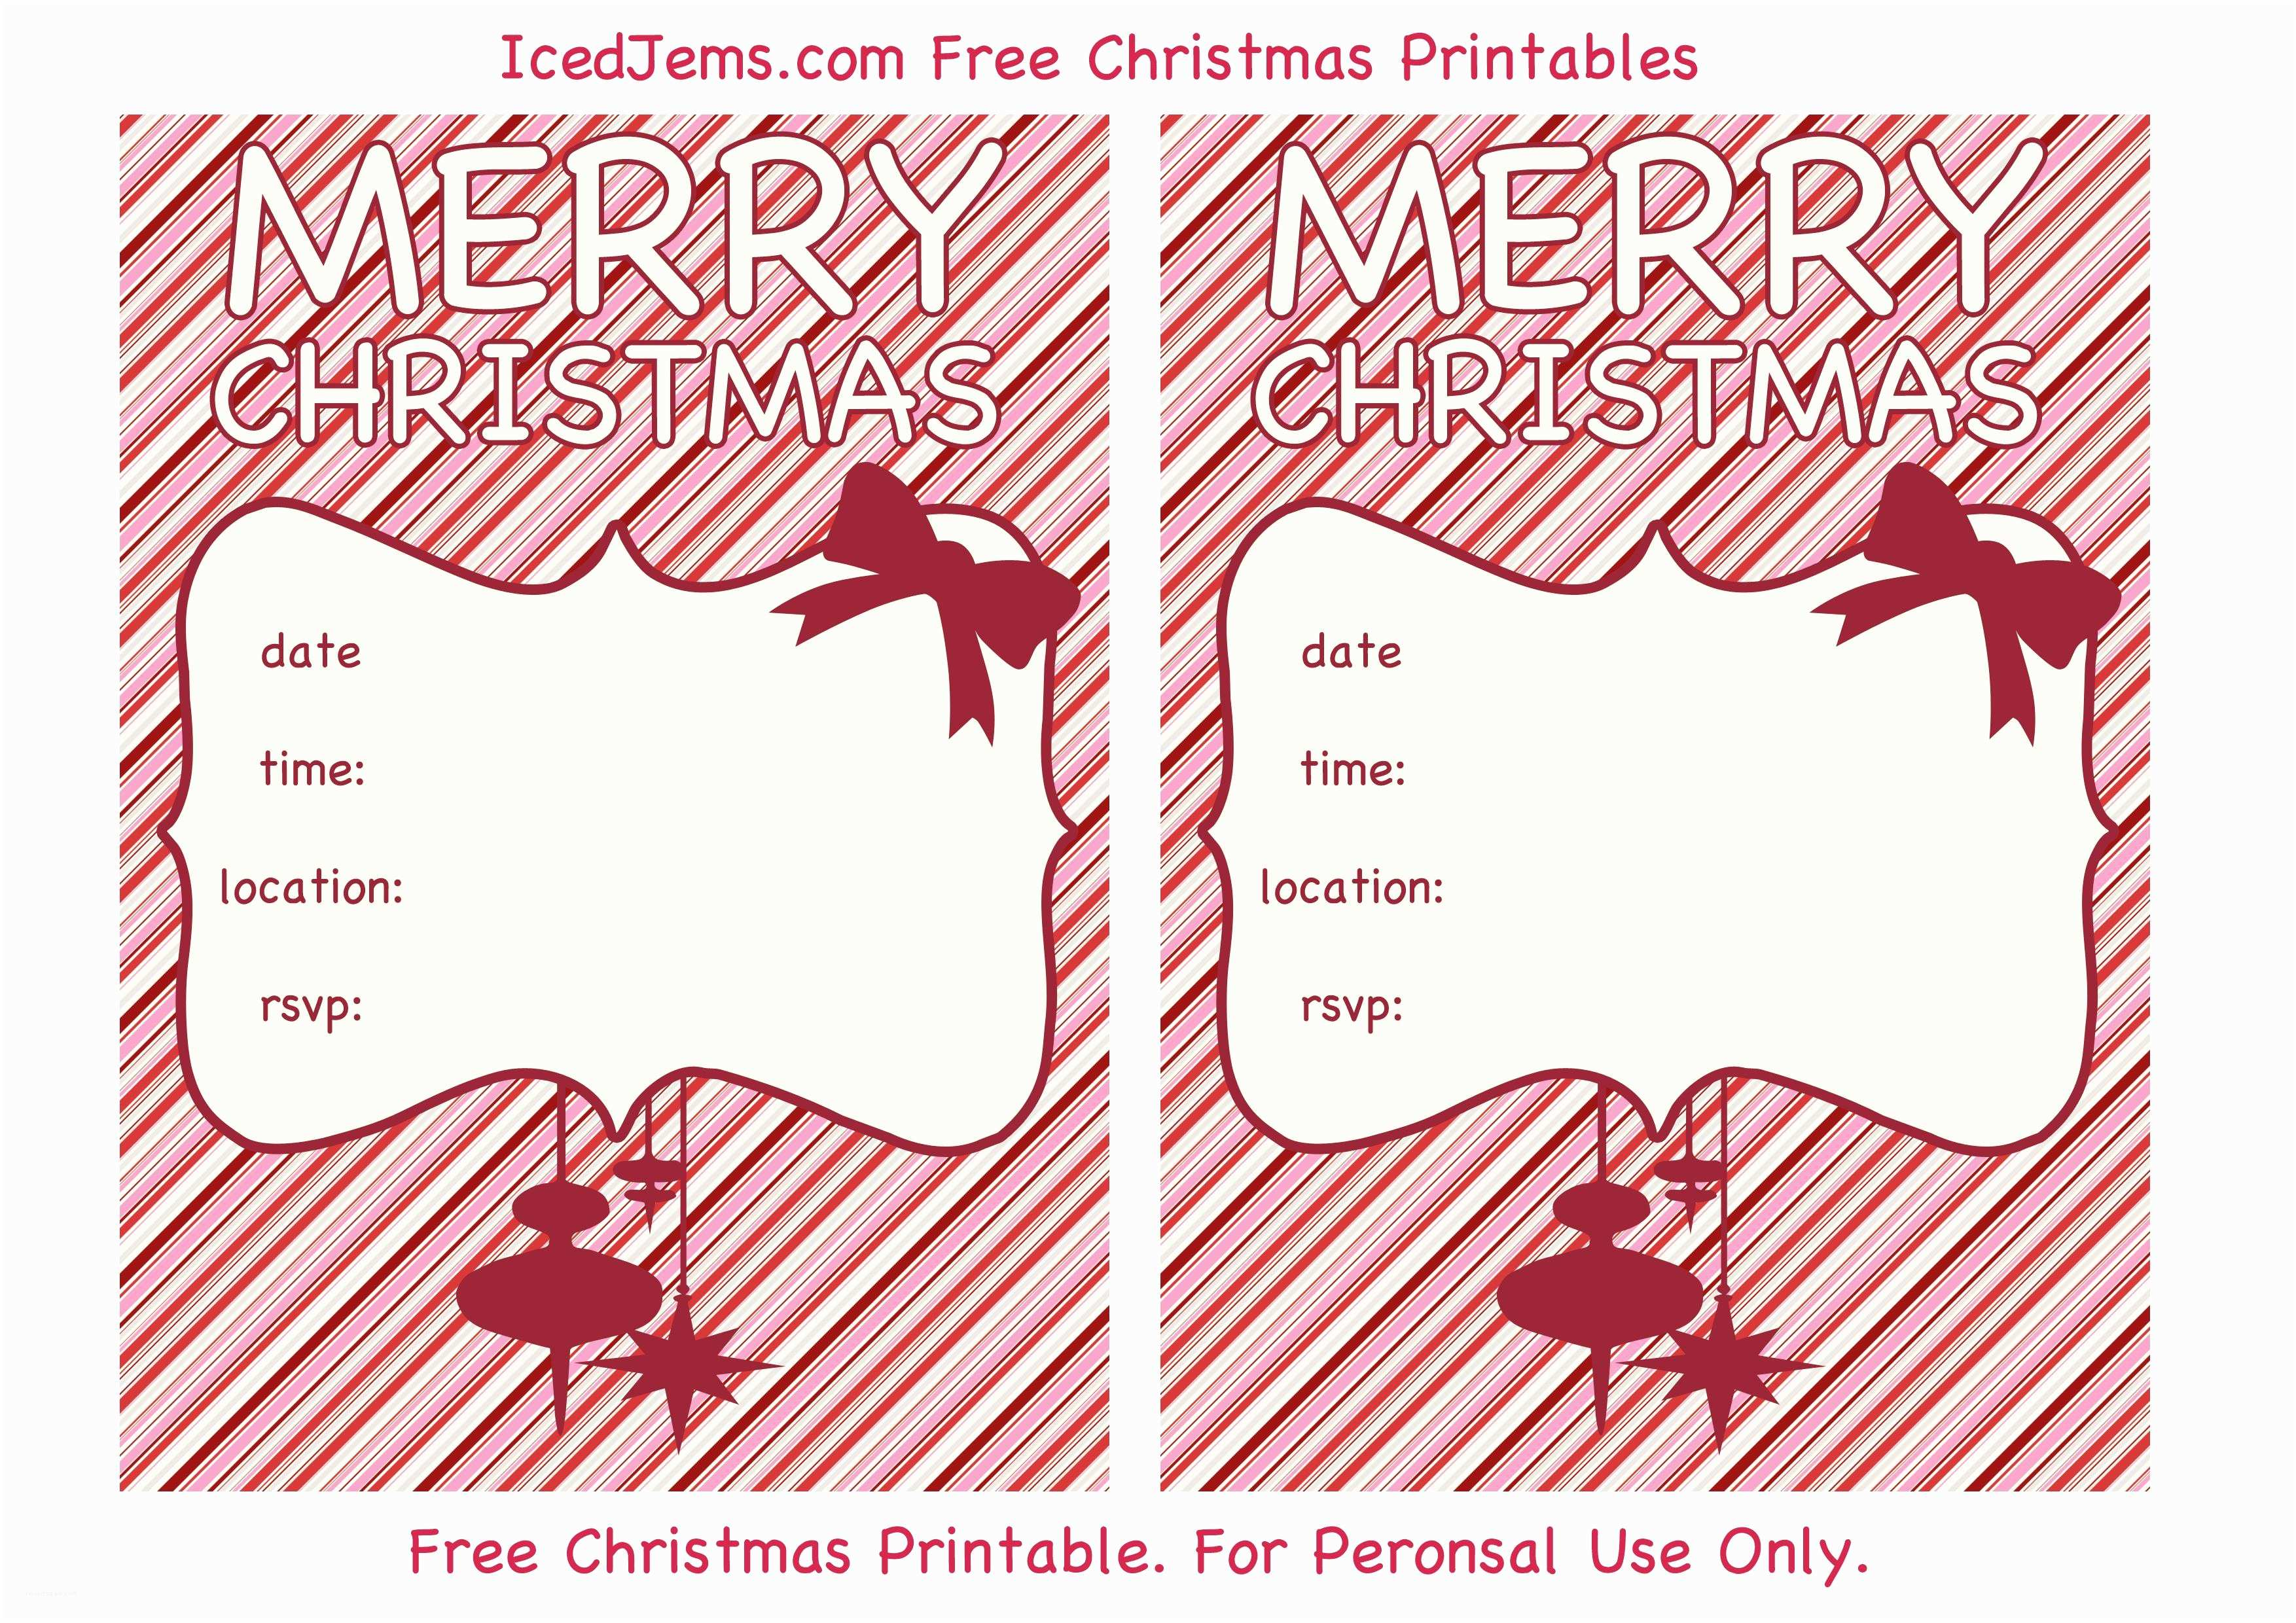 Free Christmas Party Invitations Free Christmas Party Invitations